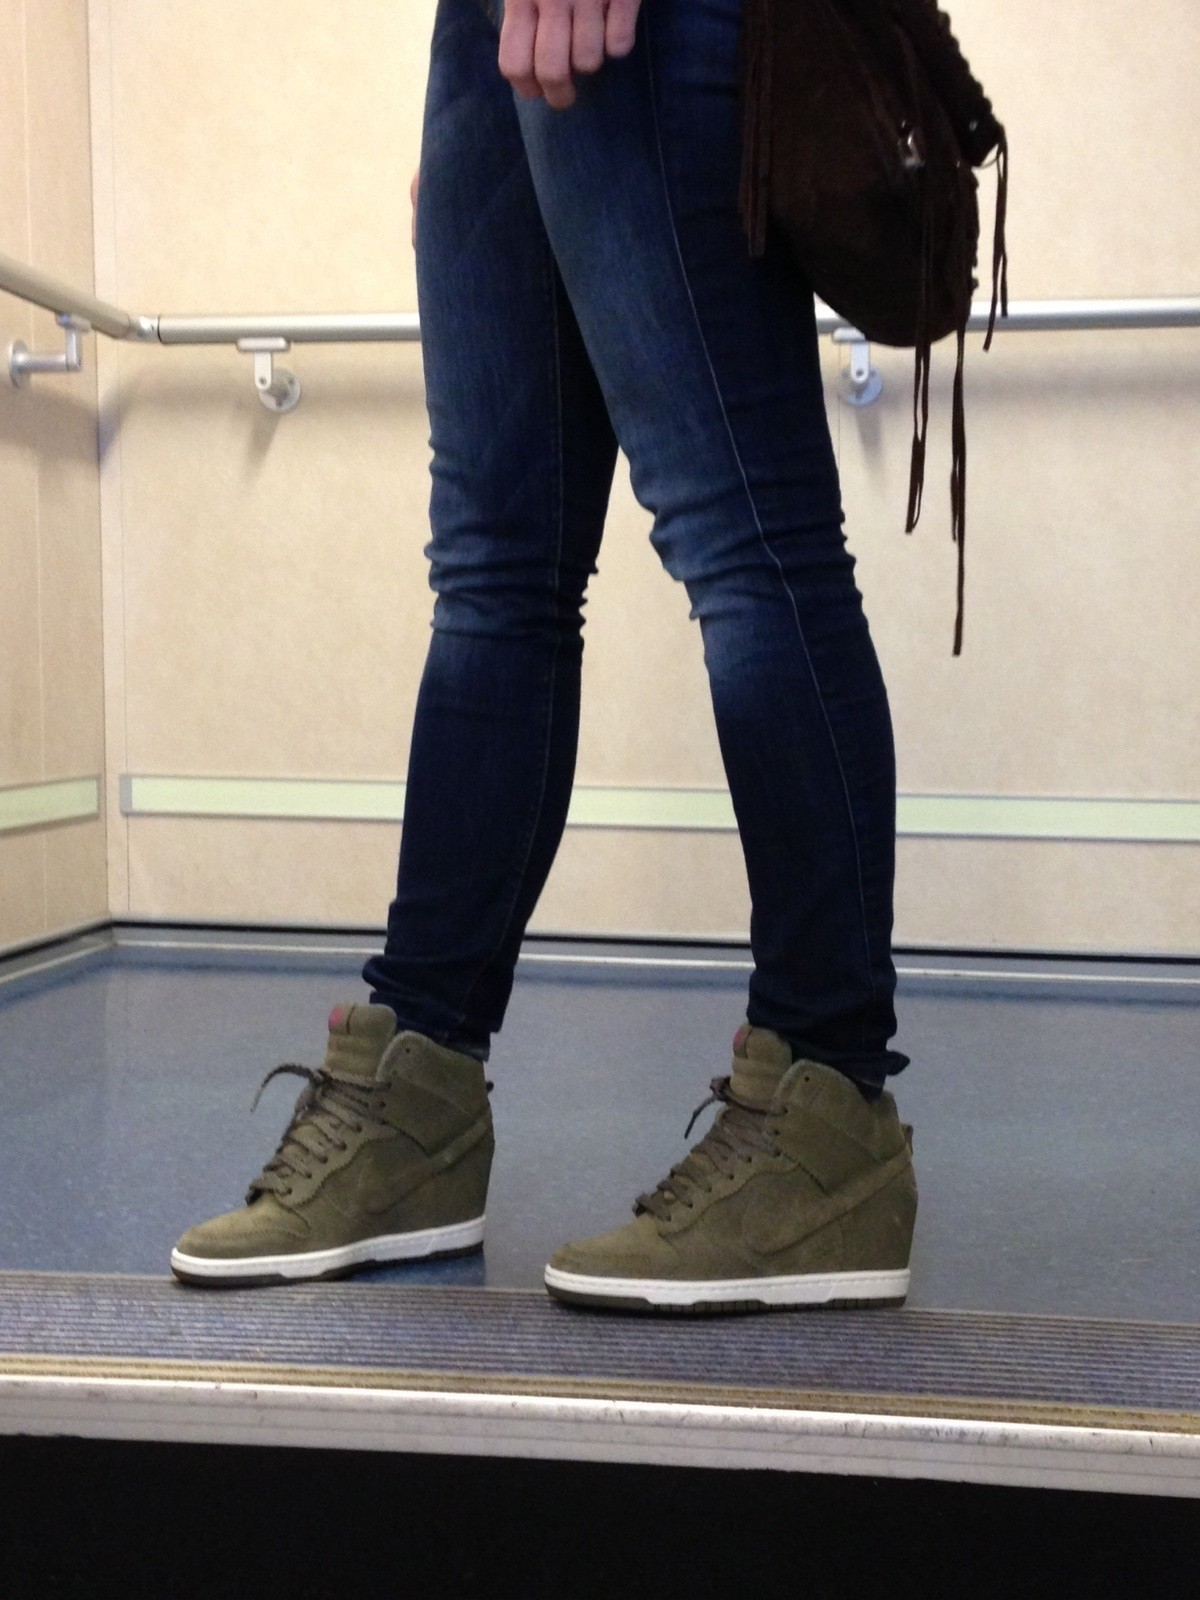 Nike Dunk Sky High Fashion Week Mabelle Style And Fashion